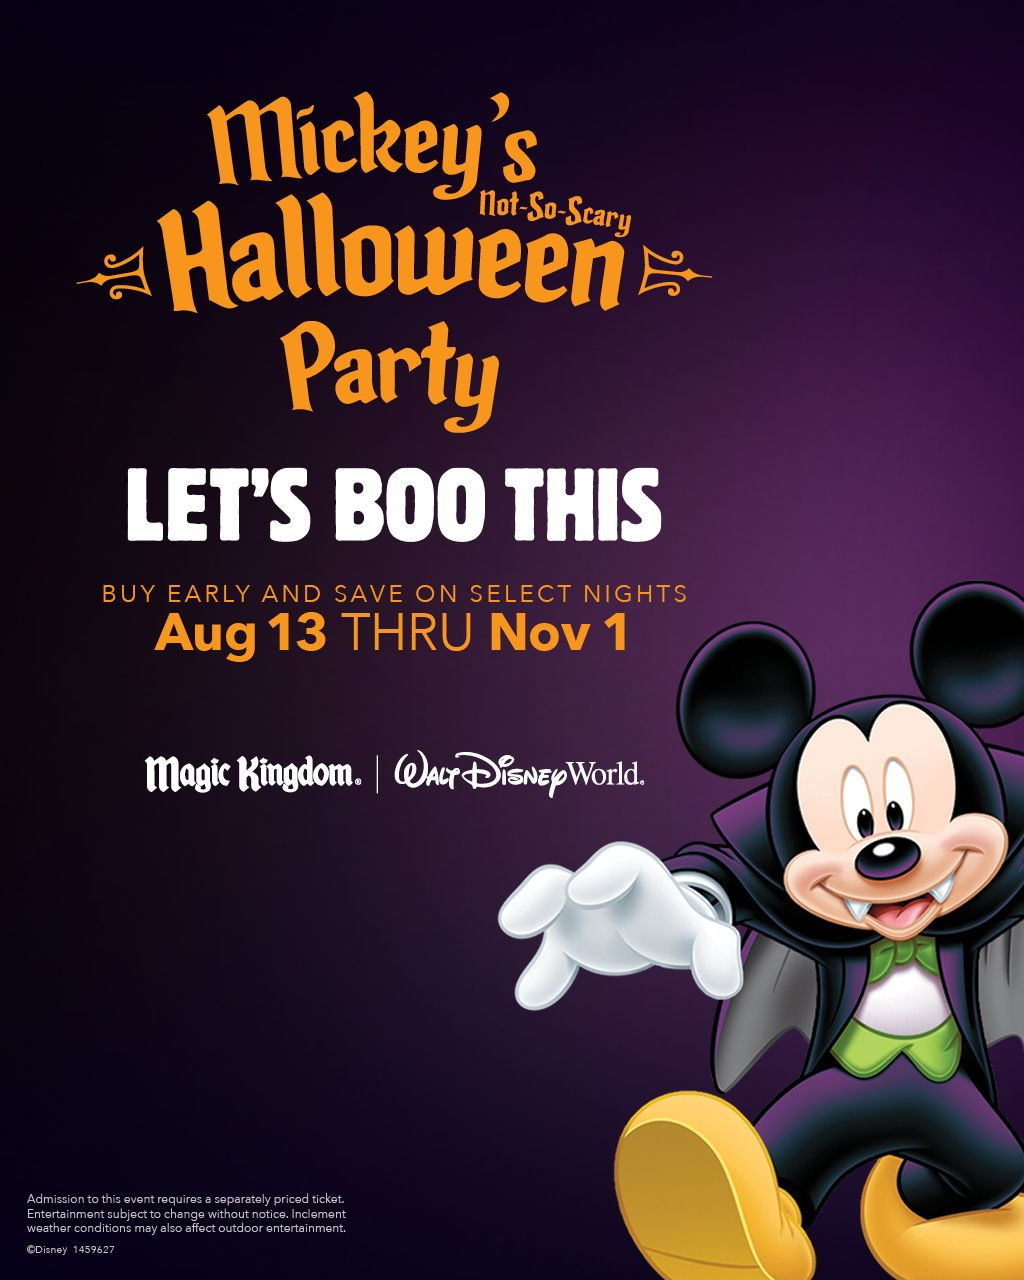 Moms Guide To Mickeys Not So Scary Halloween Party 2020 2020 Mickey's Not So Scary Halloween Party in 2020 | Scary